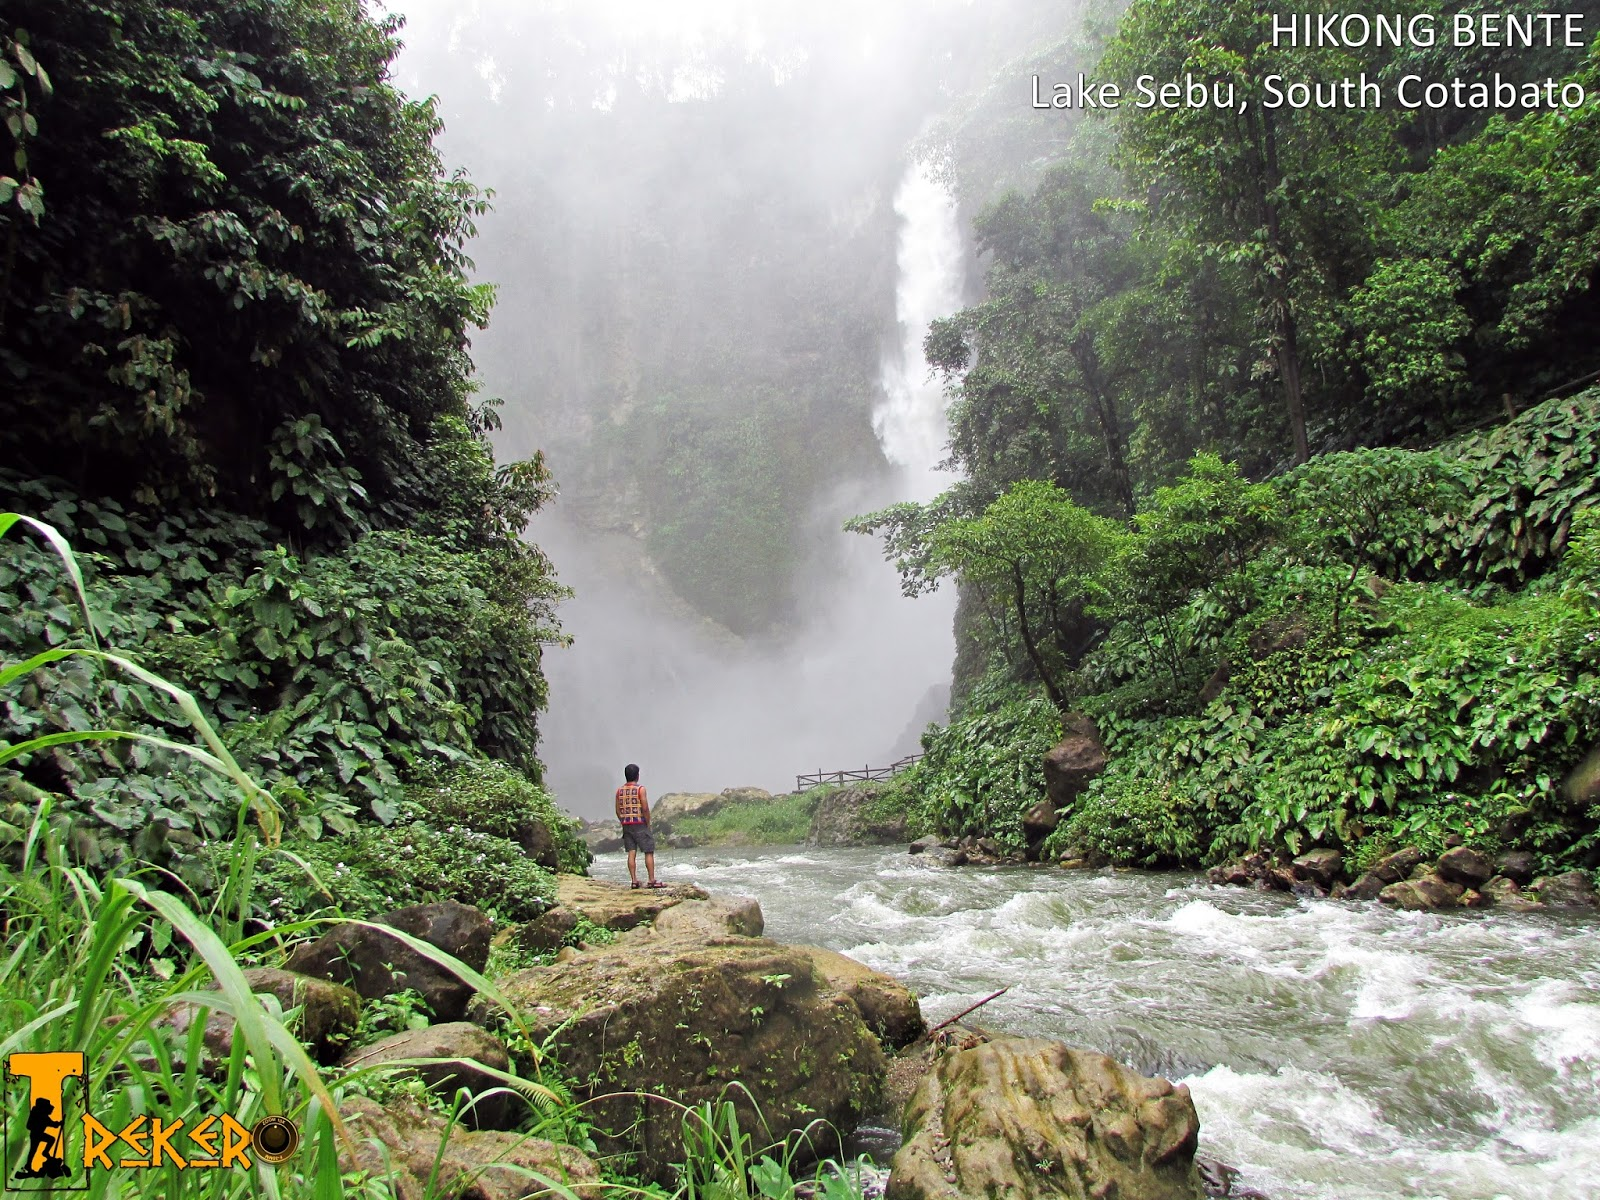 Trekero the 7 falls of lake sebu the complete list the 7 falls of lake sebu in south cotabato is a major attraction in the region also known as dongon falls tourists throng to visit the site to see the thecheapjerseys Gallery